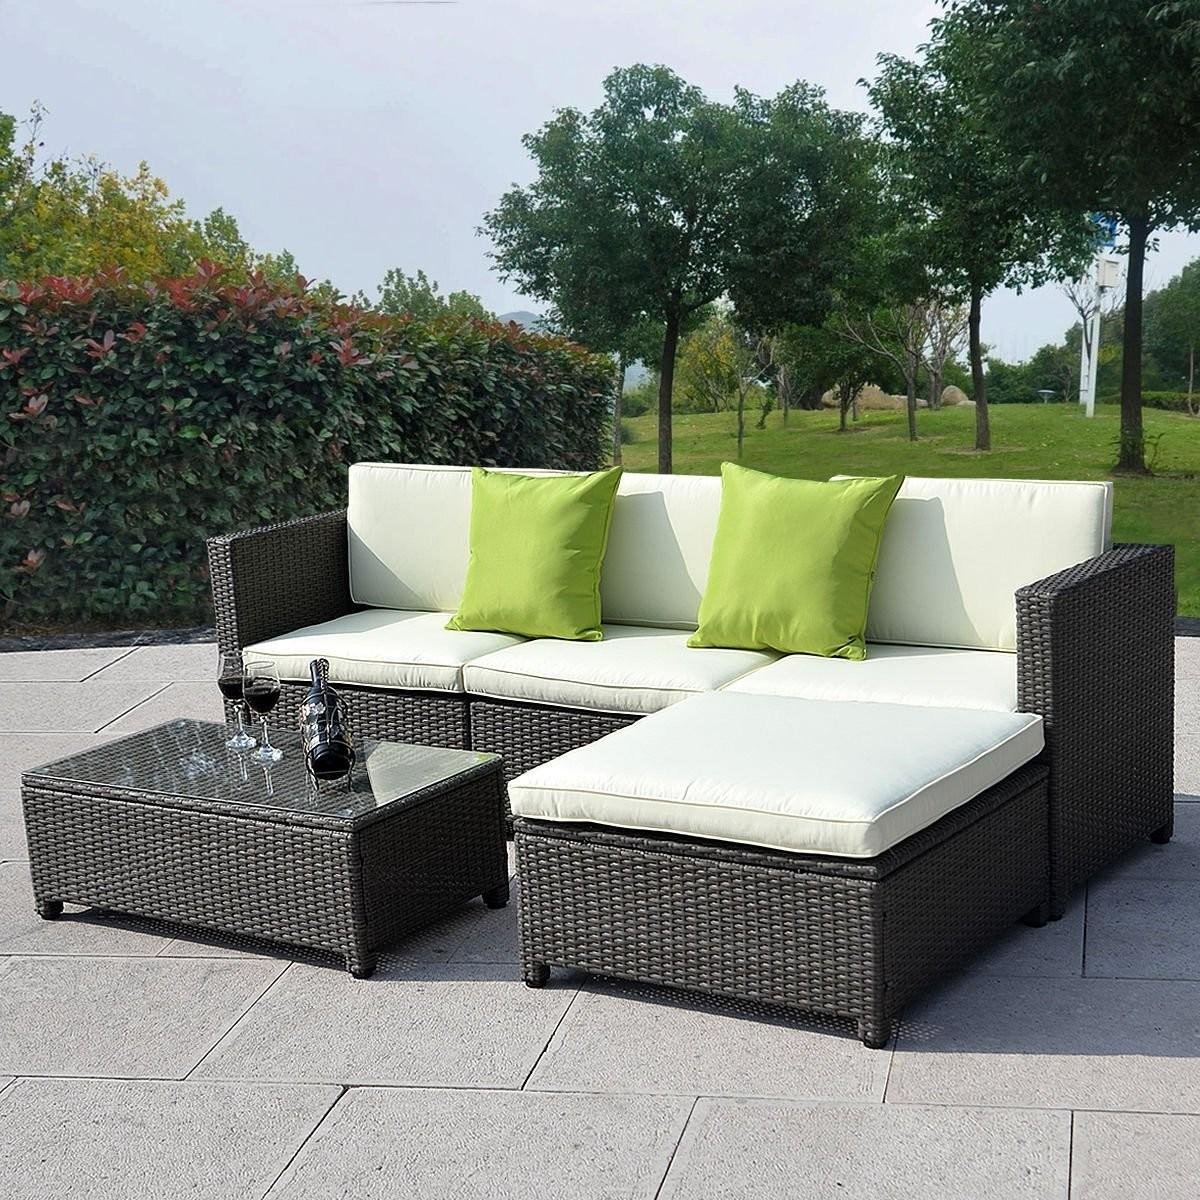 Patio Fascinating Outdoor Furniture Sets